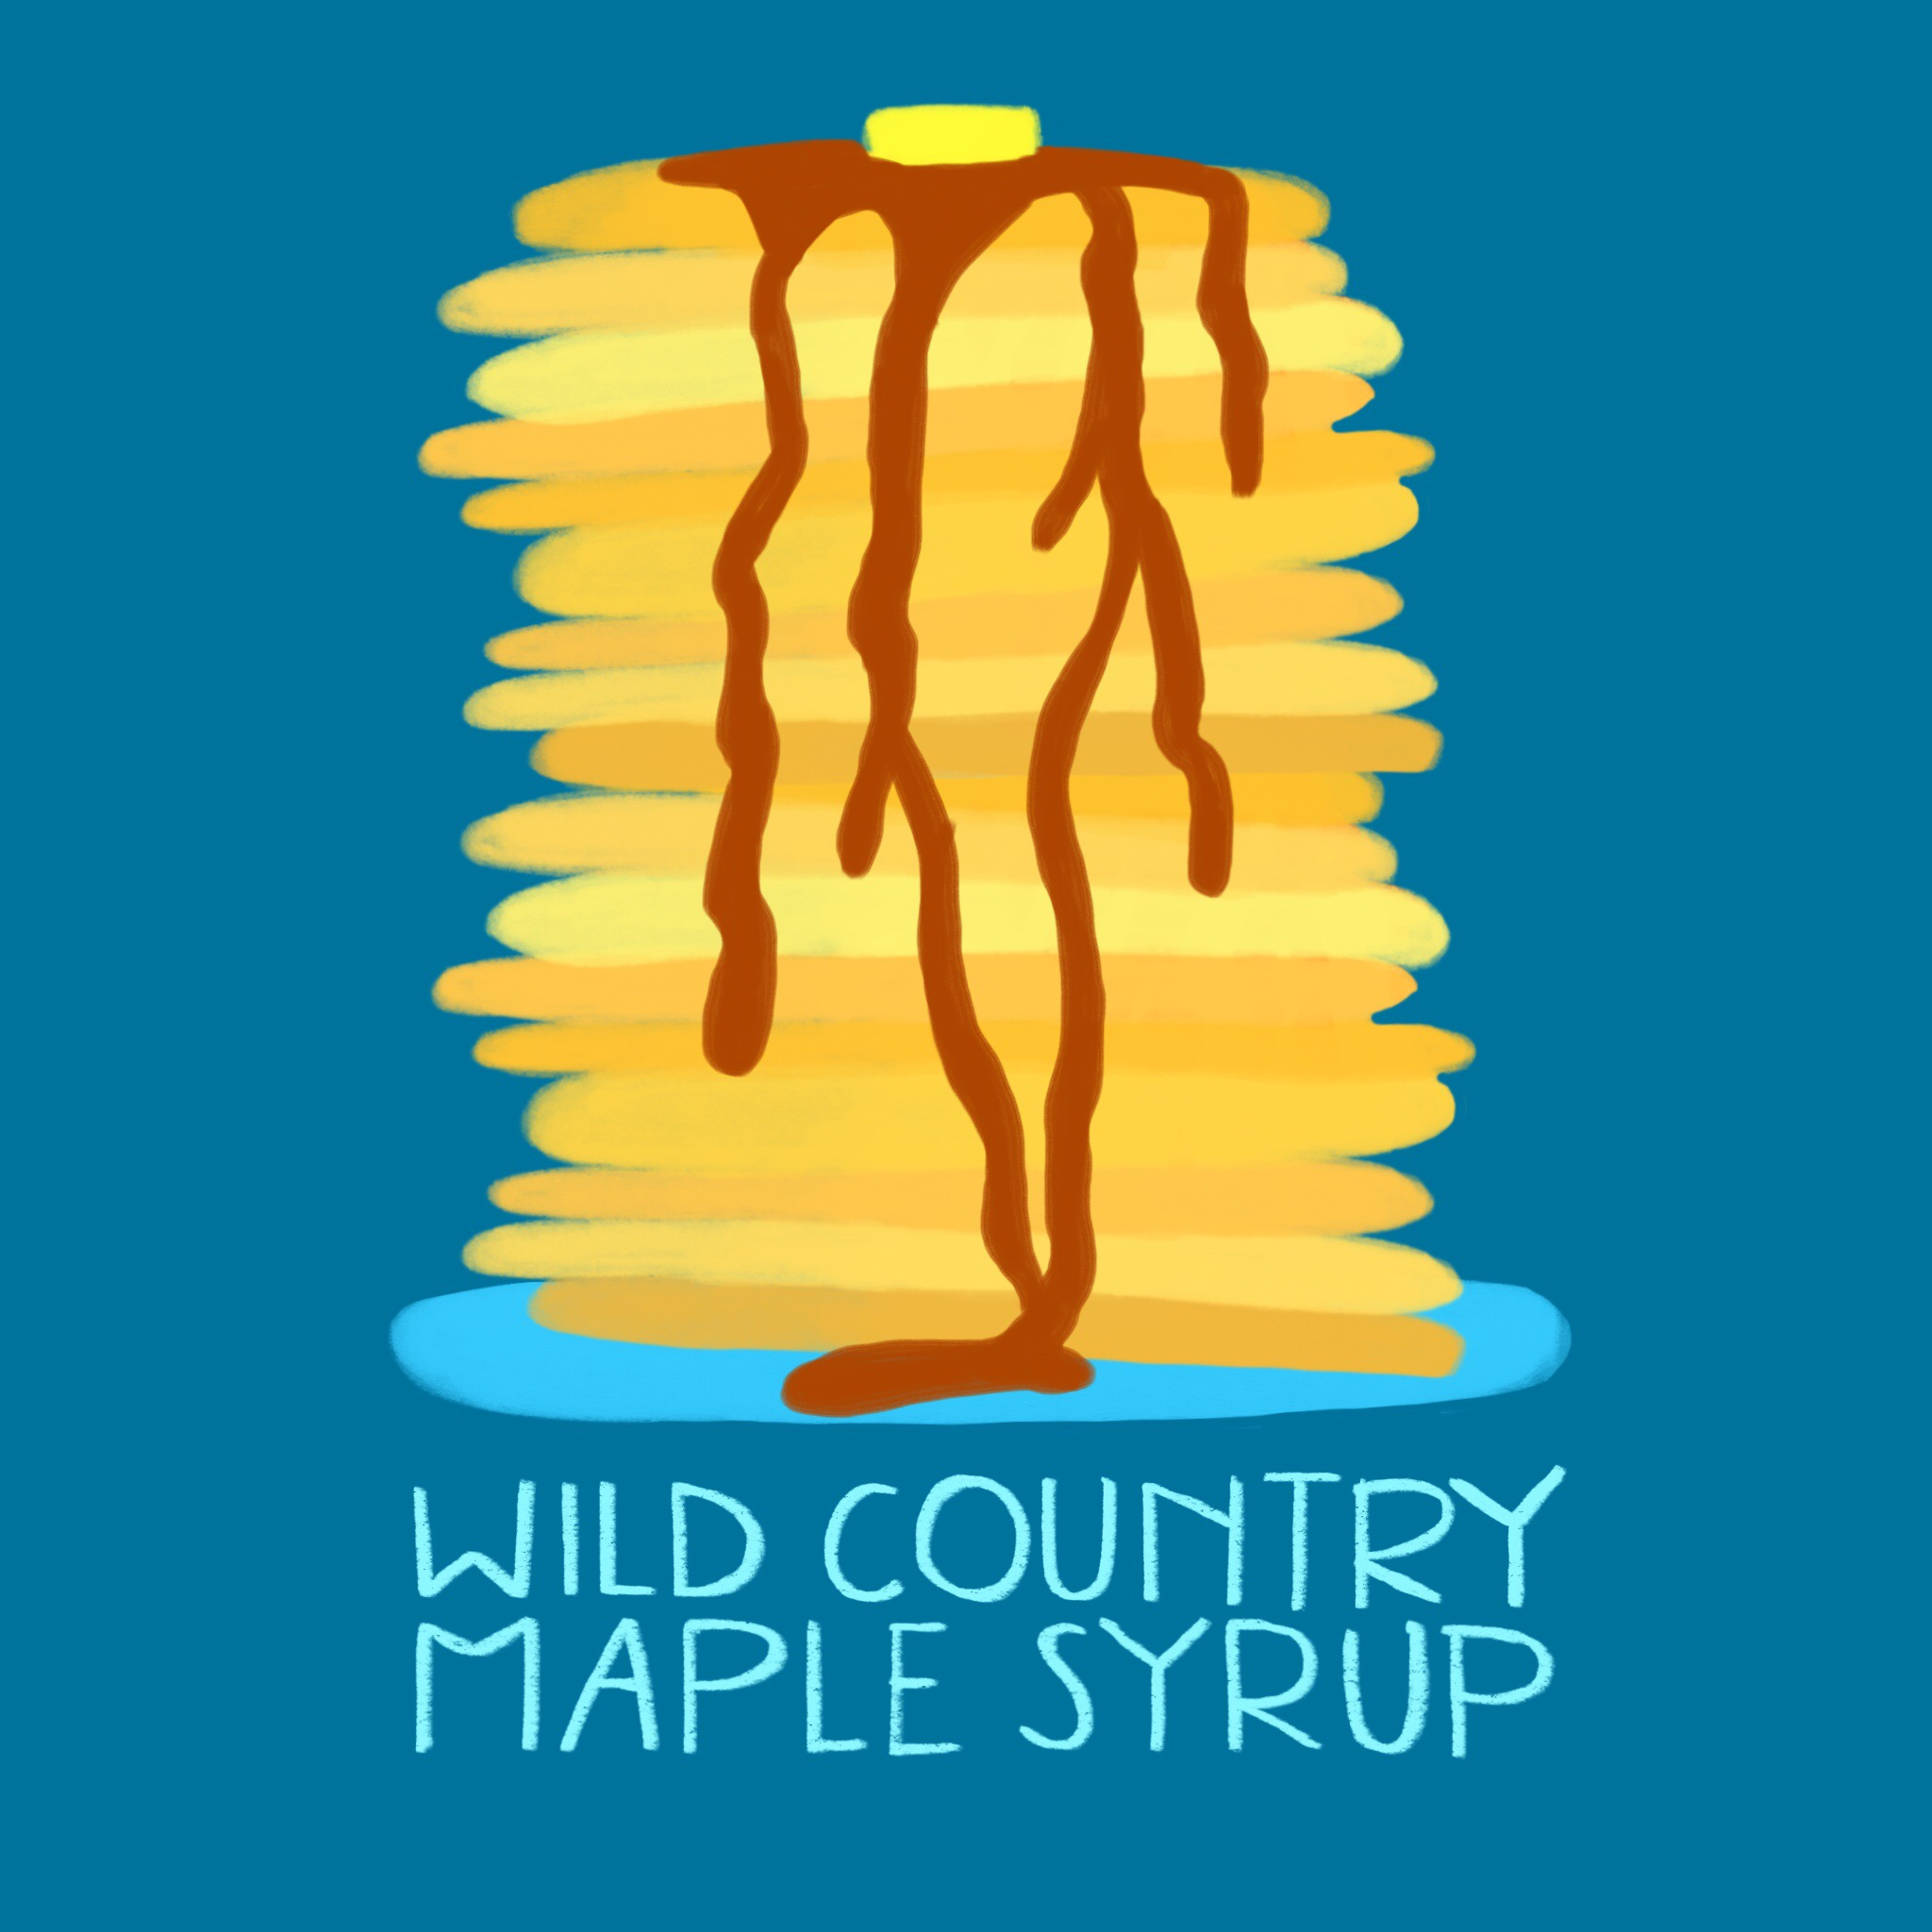 86_-_Wild_Country_Maple_Syrup.jpg